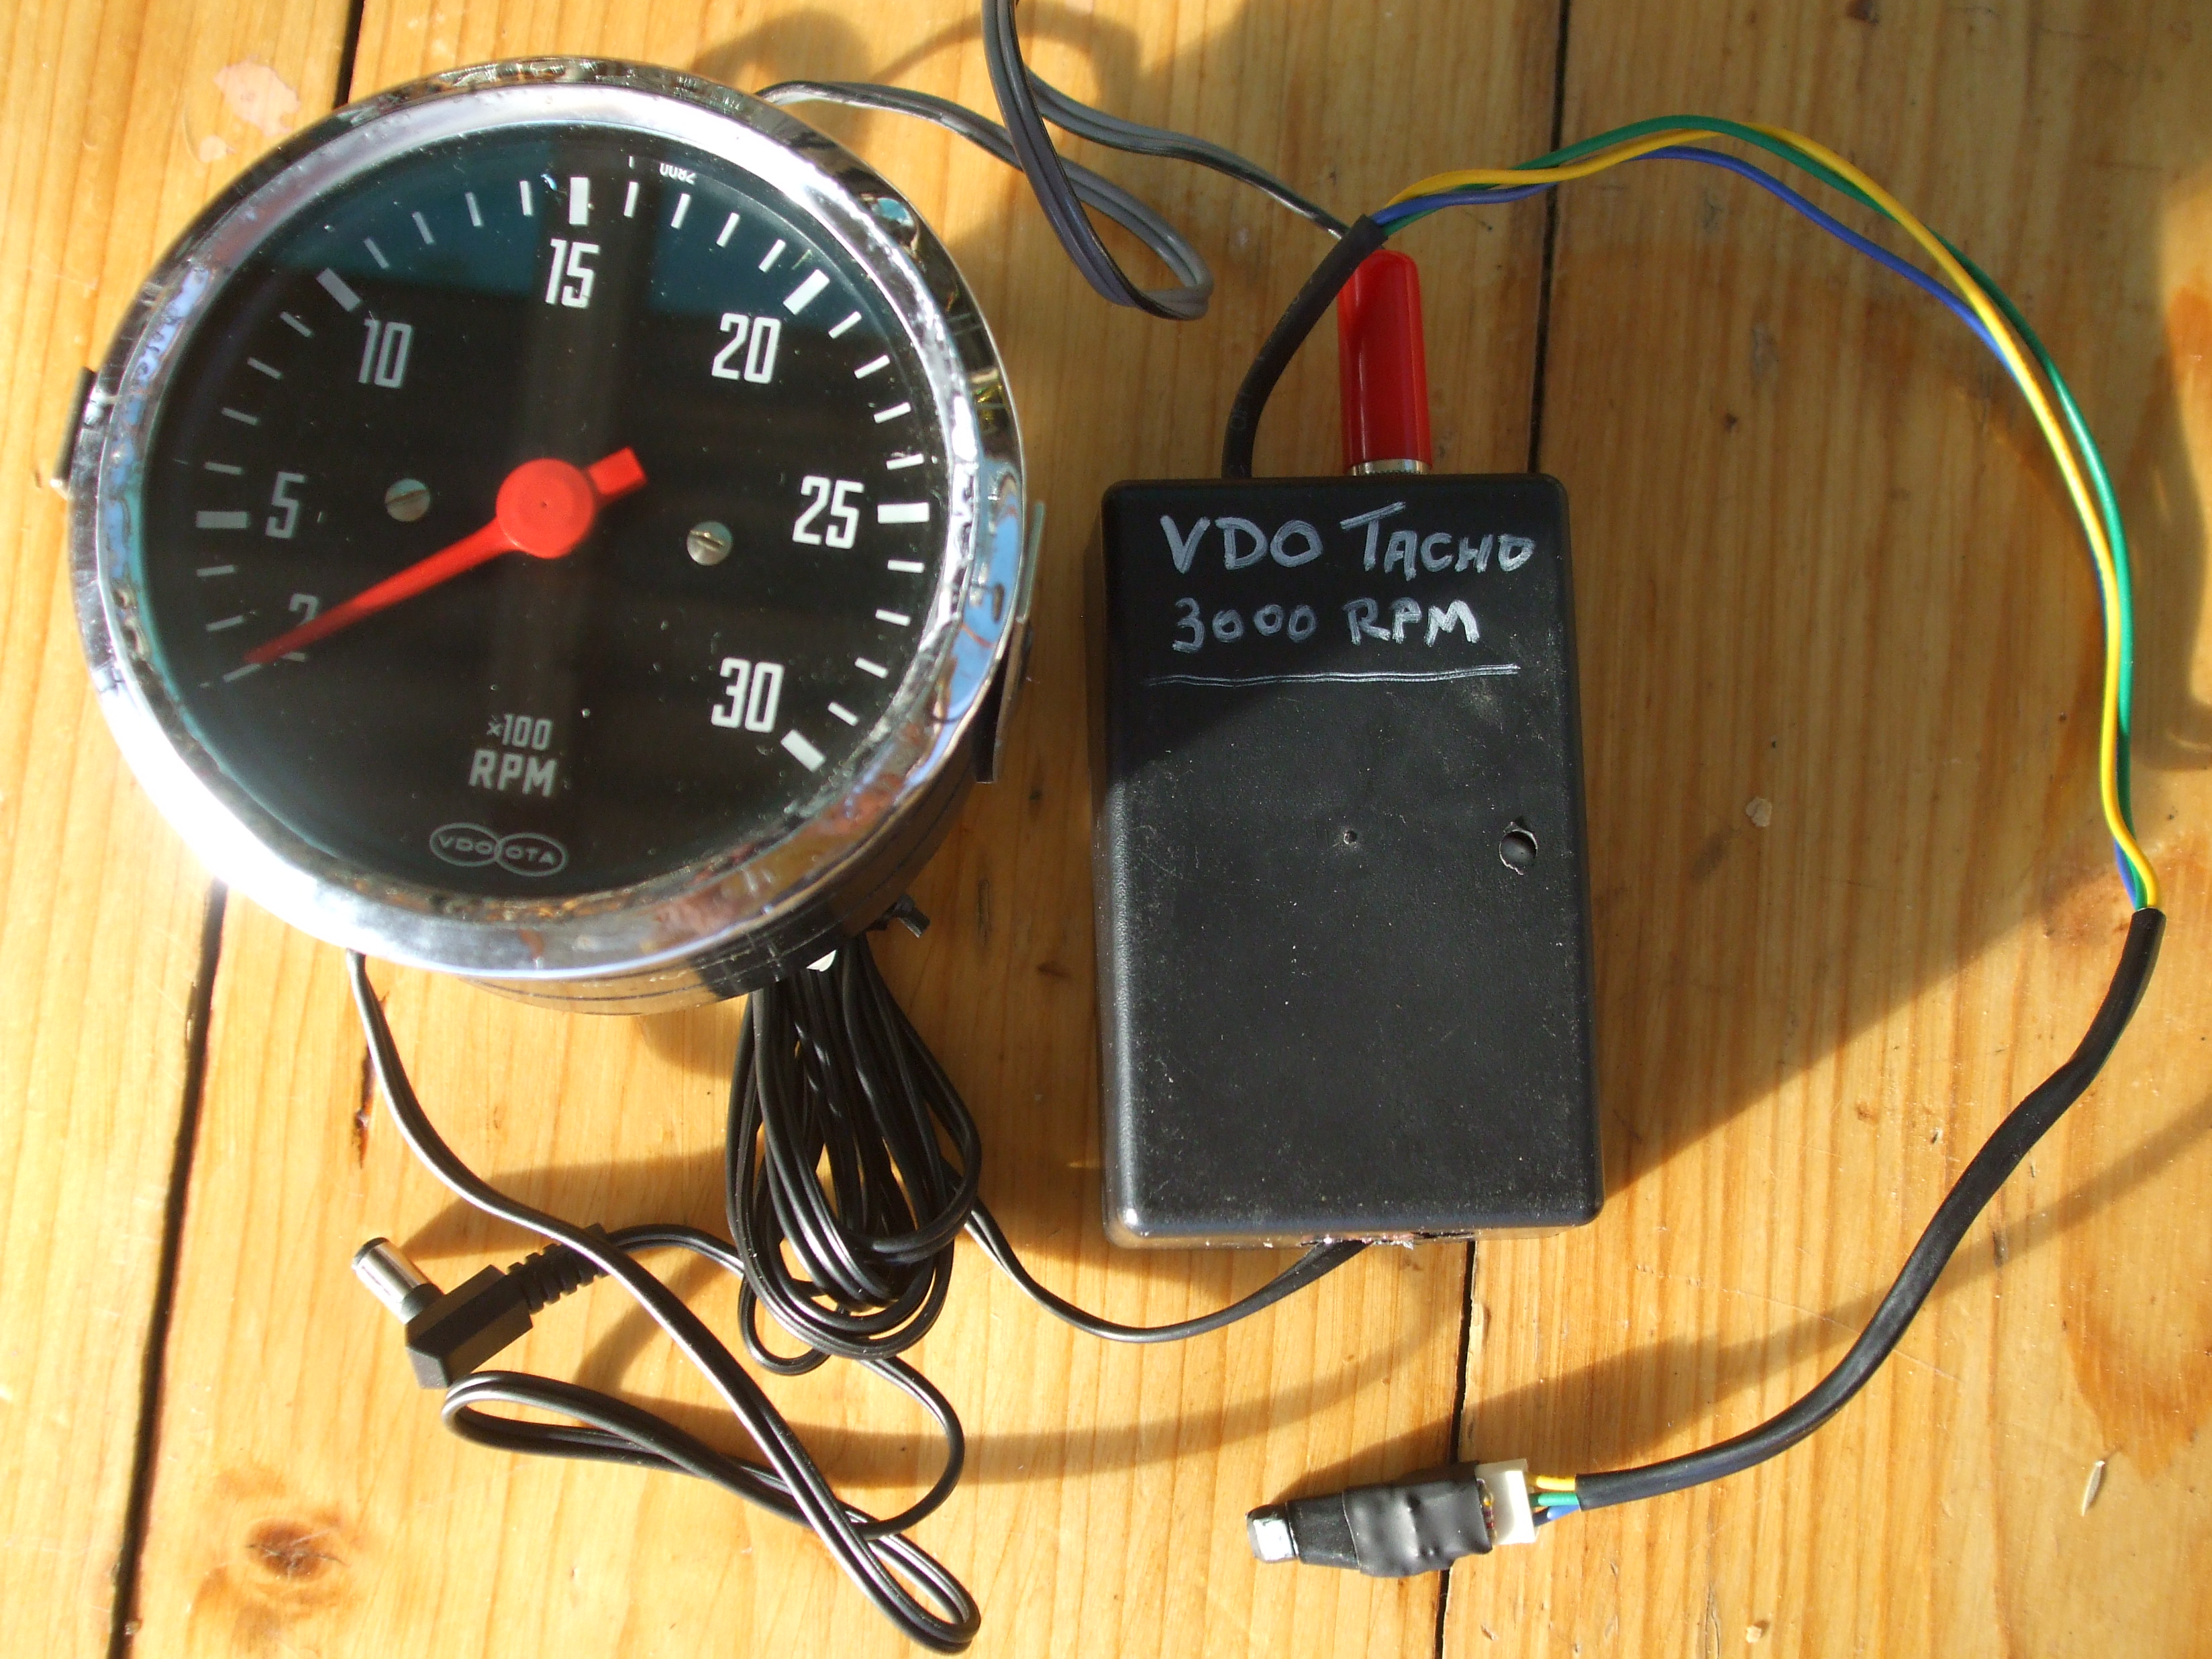 newvery new to electronics need help with making a tach for a – Rpm On Vdo Gauge Wiring Diagram Magneto